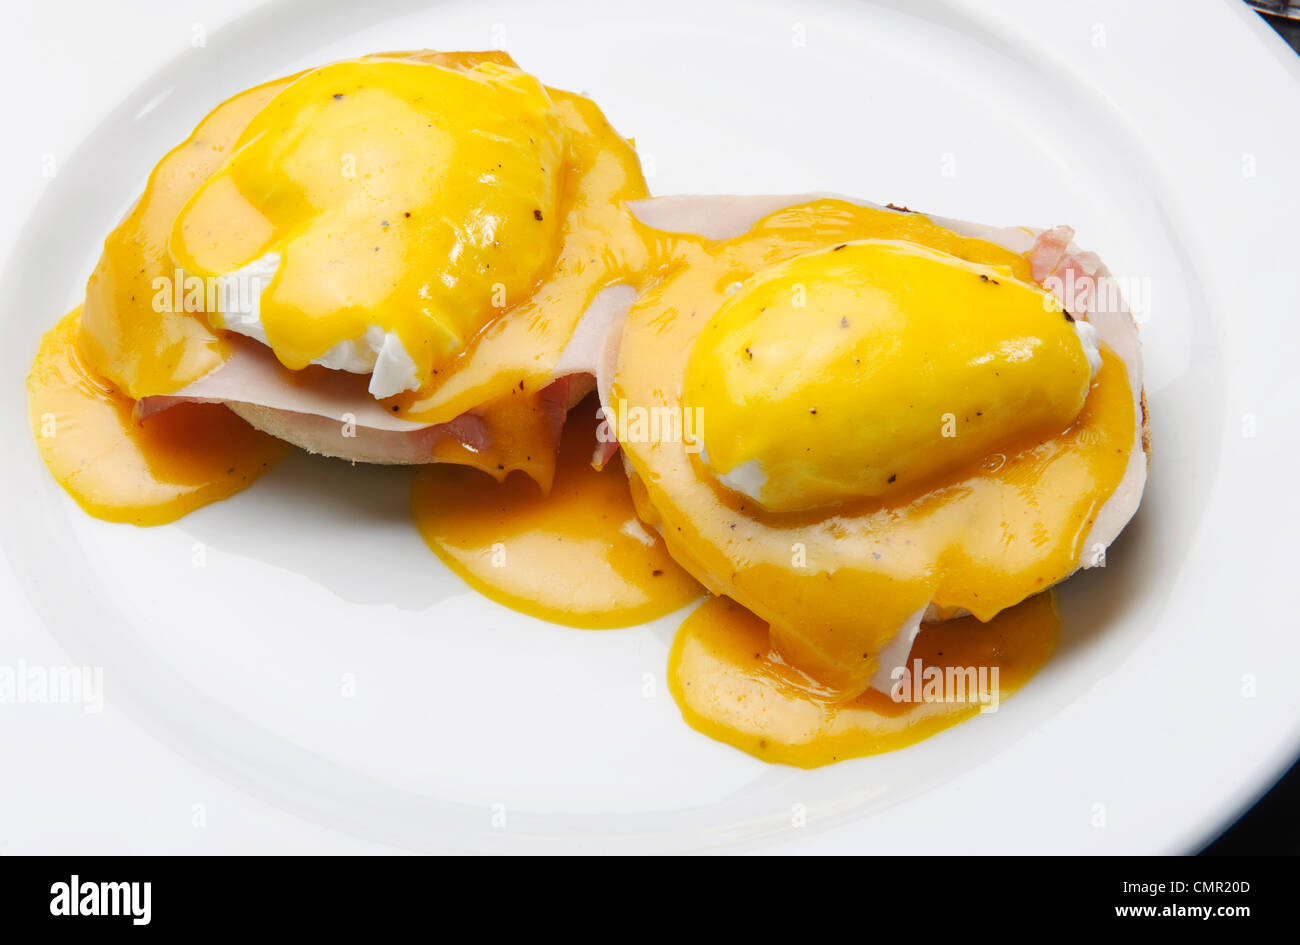 Eggs Benedict is a dish of two halves of an English muffin, topped with ham or bacon, poached eggs and Hollandaise - Stock Image